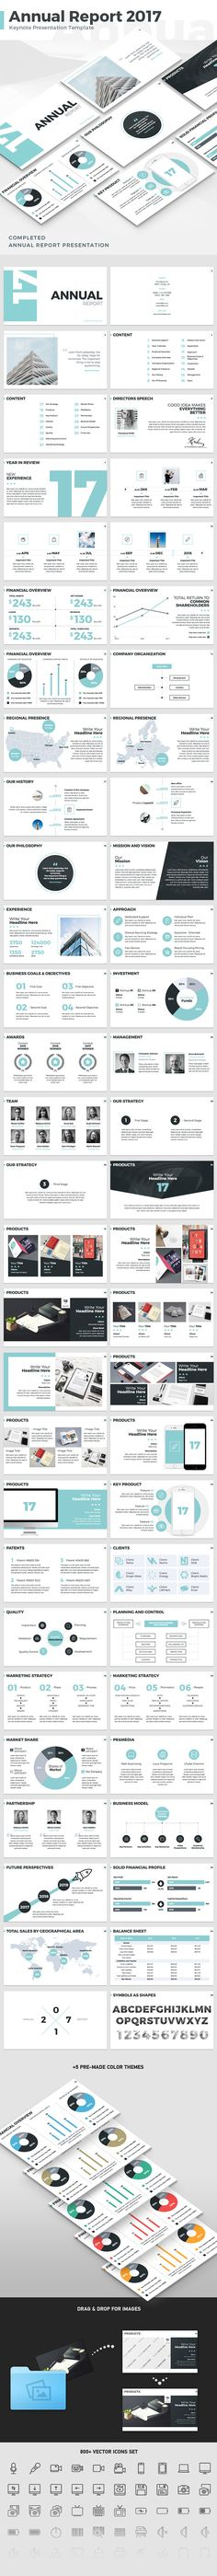 Annual Report 2017 Keynote Template — Keynote KEY #overview #startup • Download ➝ https://graphicriver.net/item/annual-report-2017-keynote-template/19075912?ref=pxcr